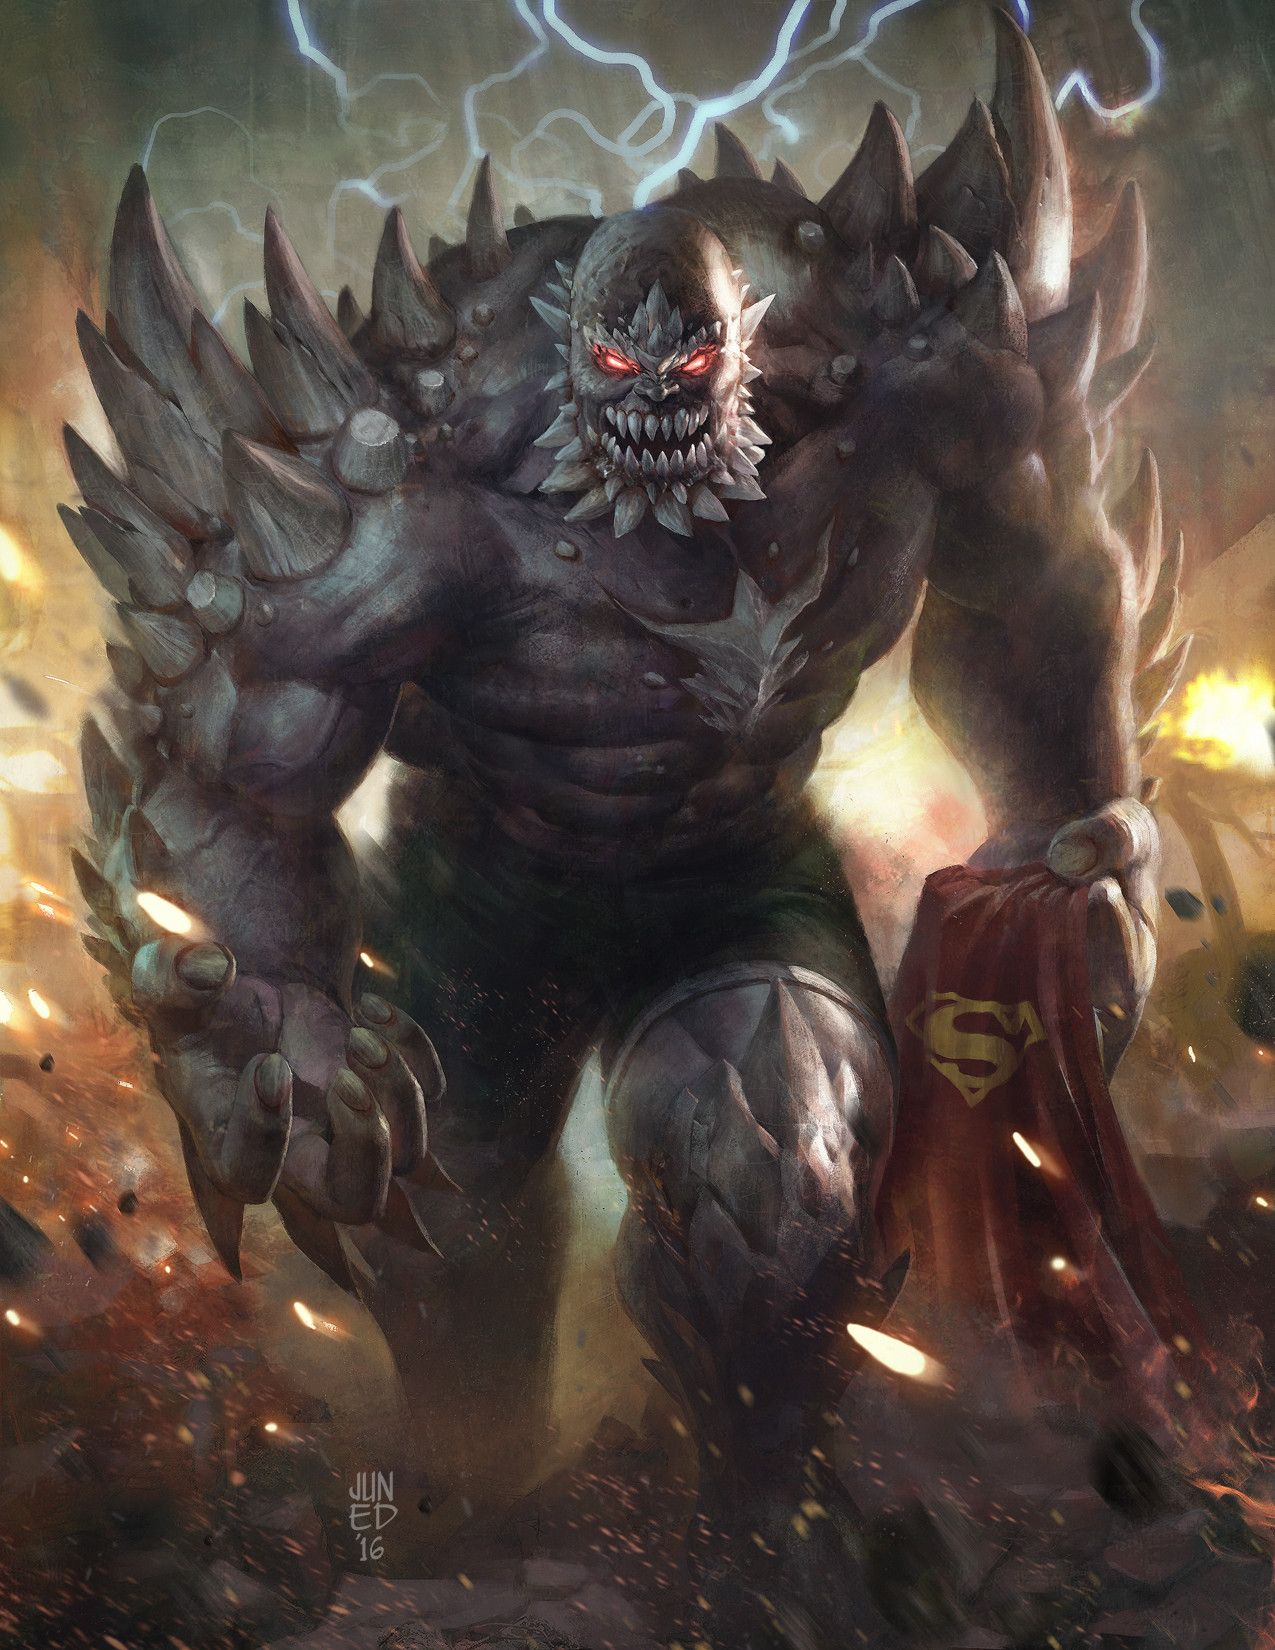 Thanos vs doomsday